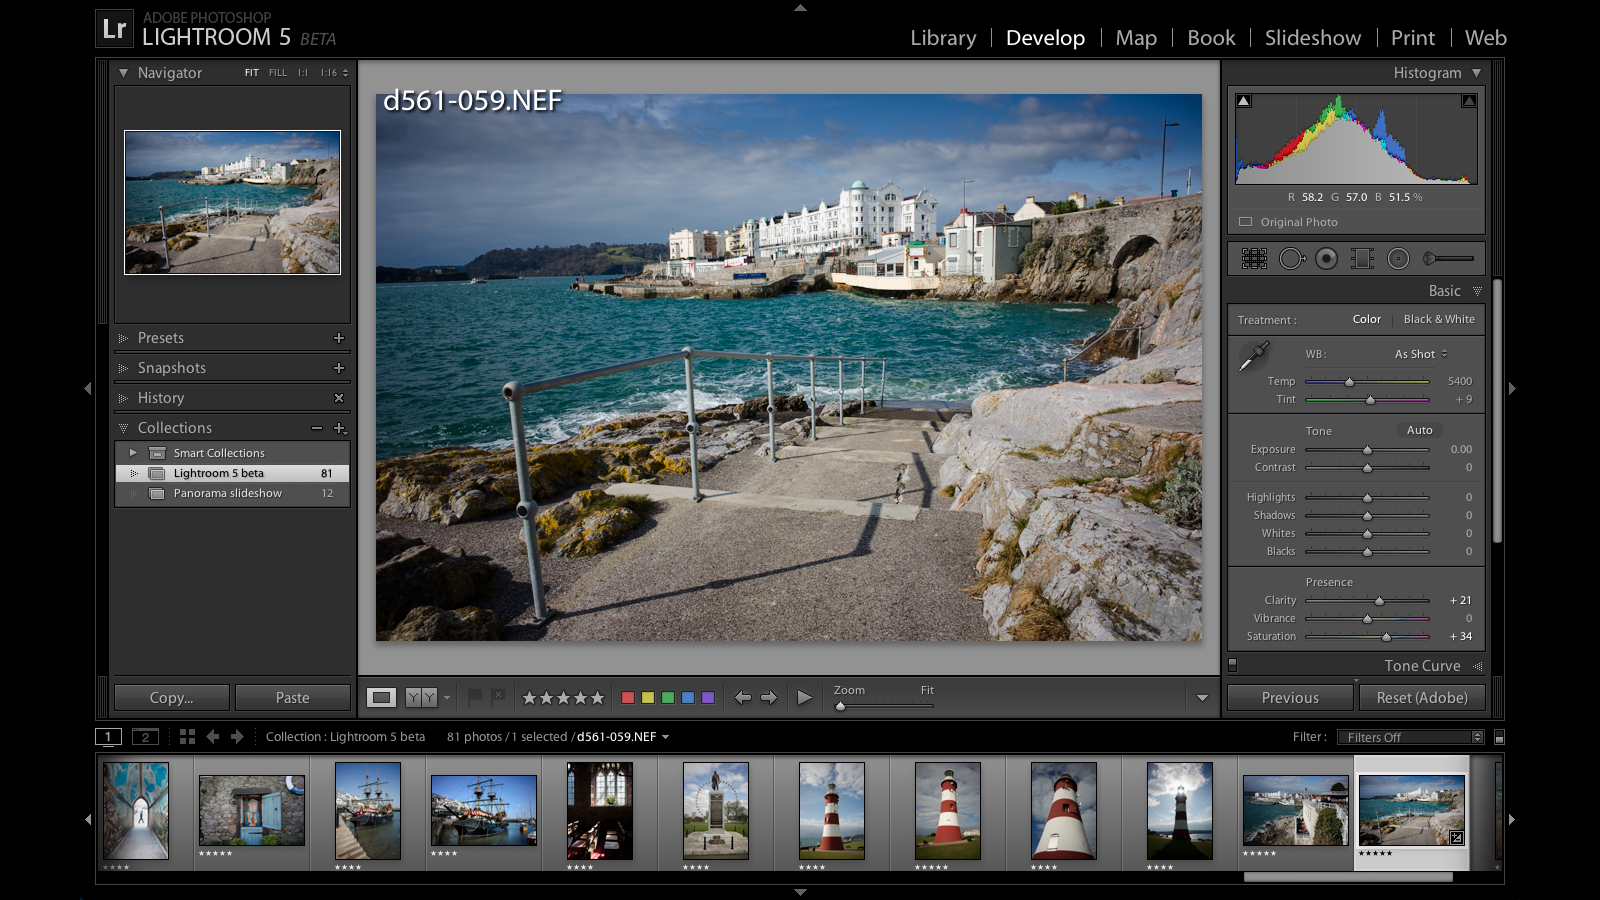 Photoshop 5 Adobe Photoshop Lightroom 5 Review Techradar